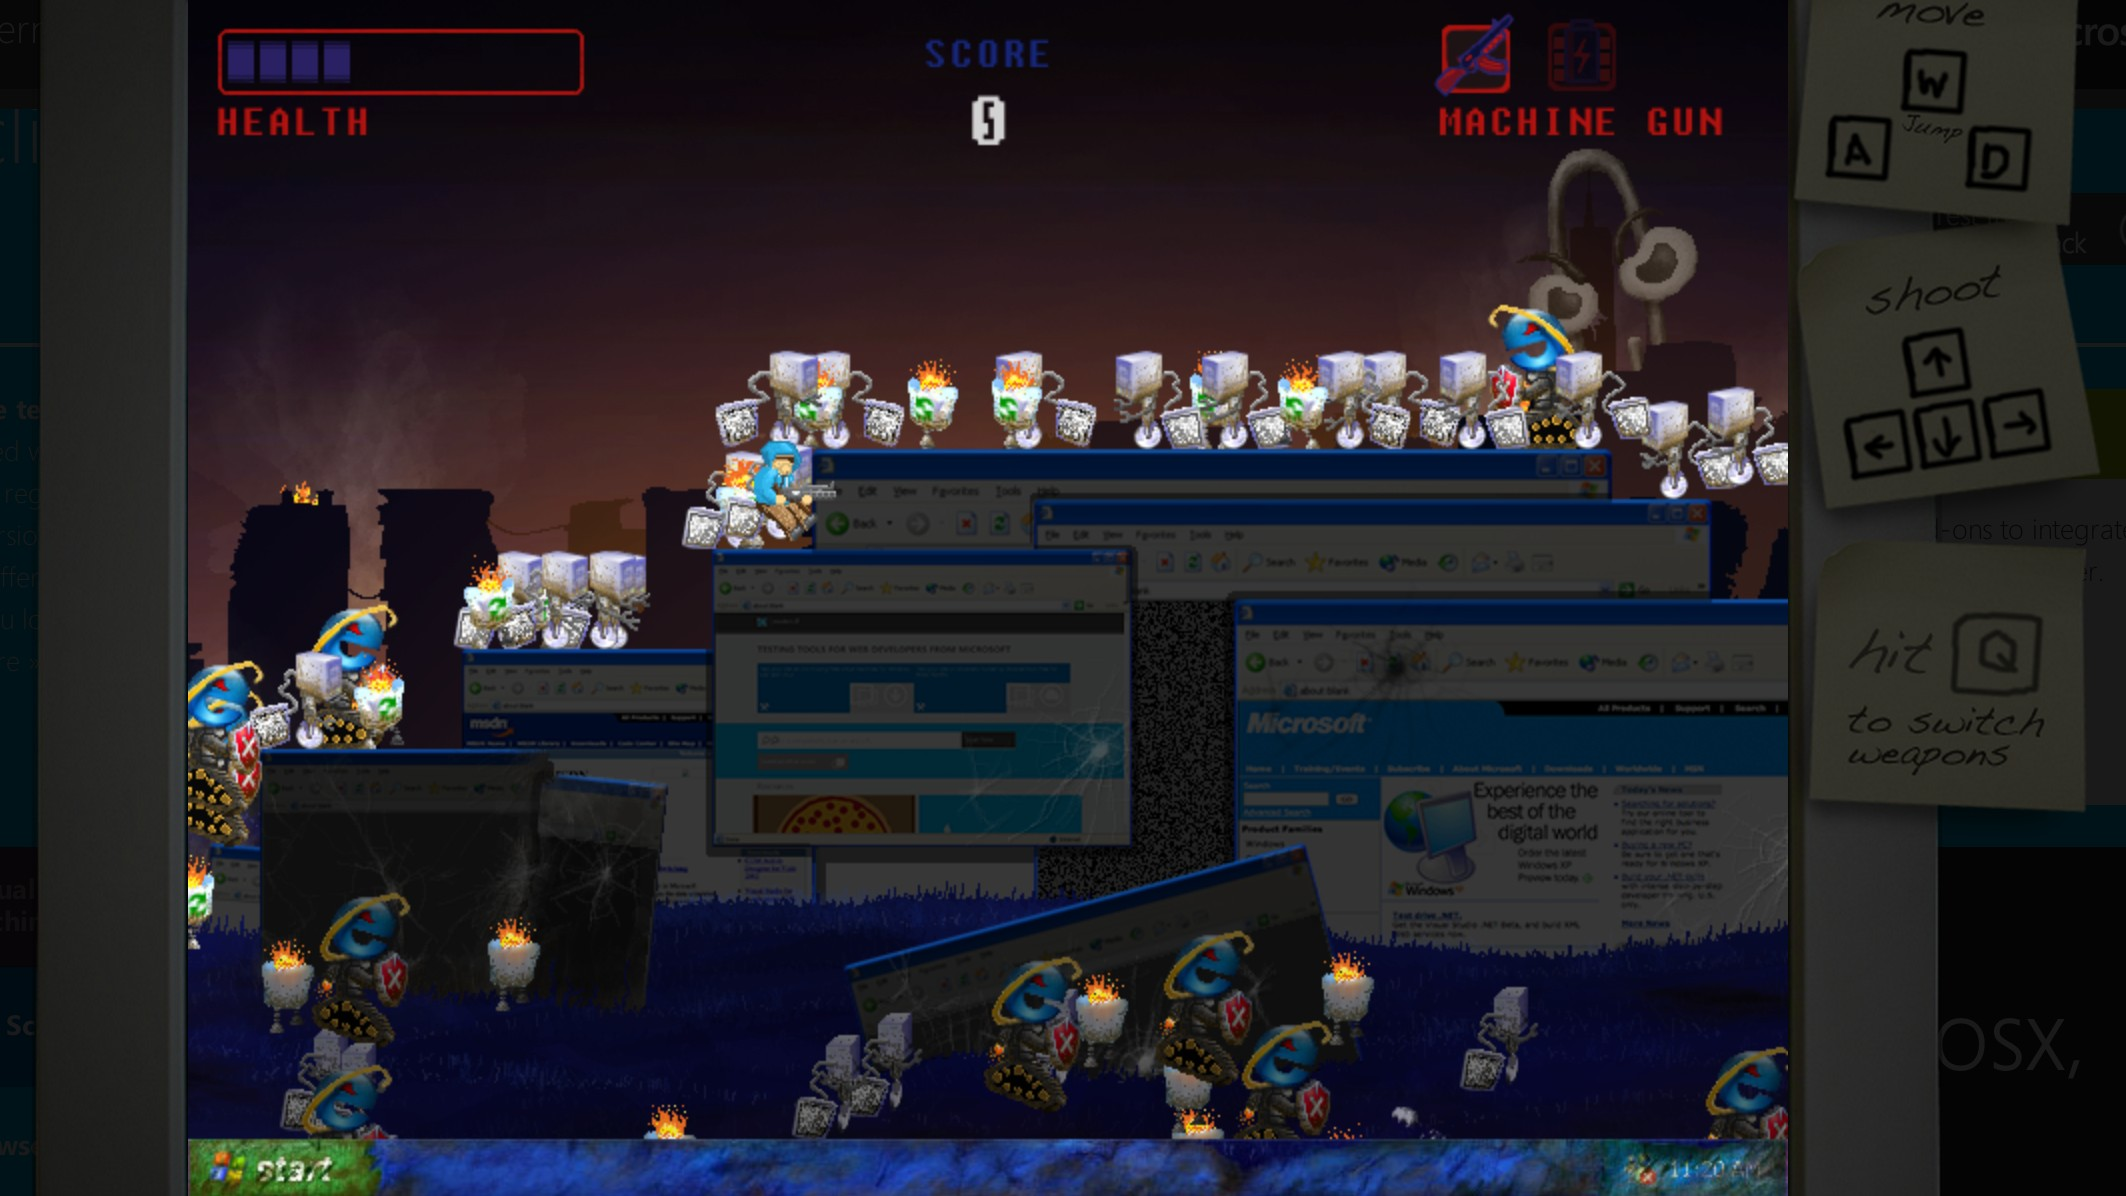 Kill Windows XP Once and For All in Microsoft's New Browser Game